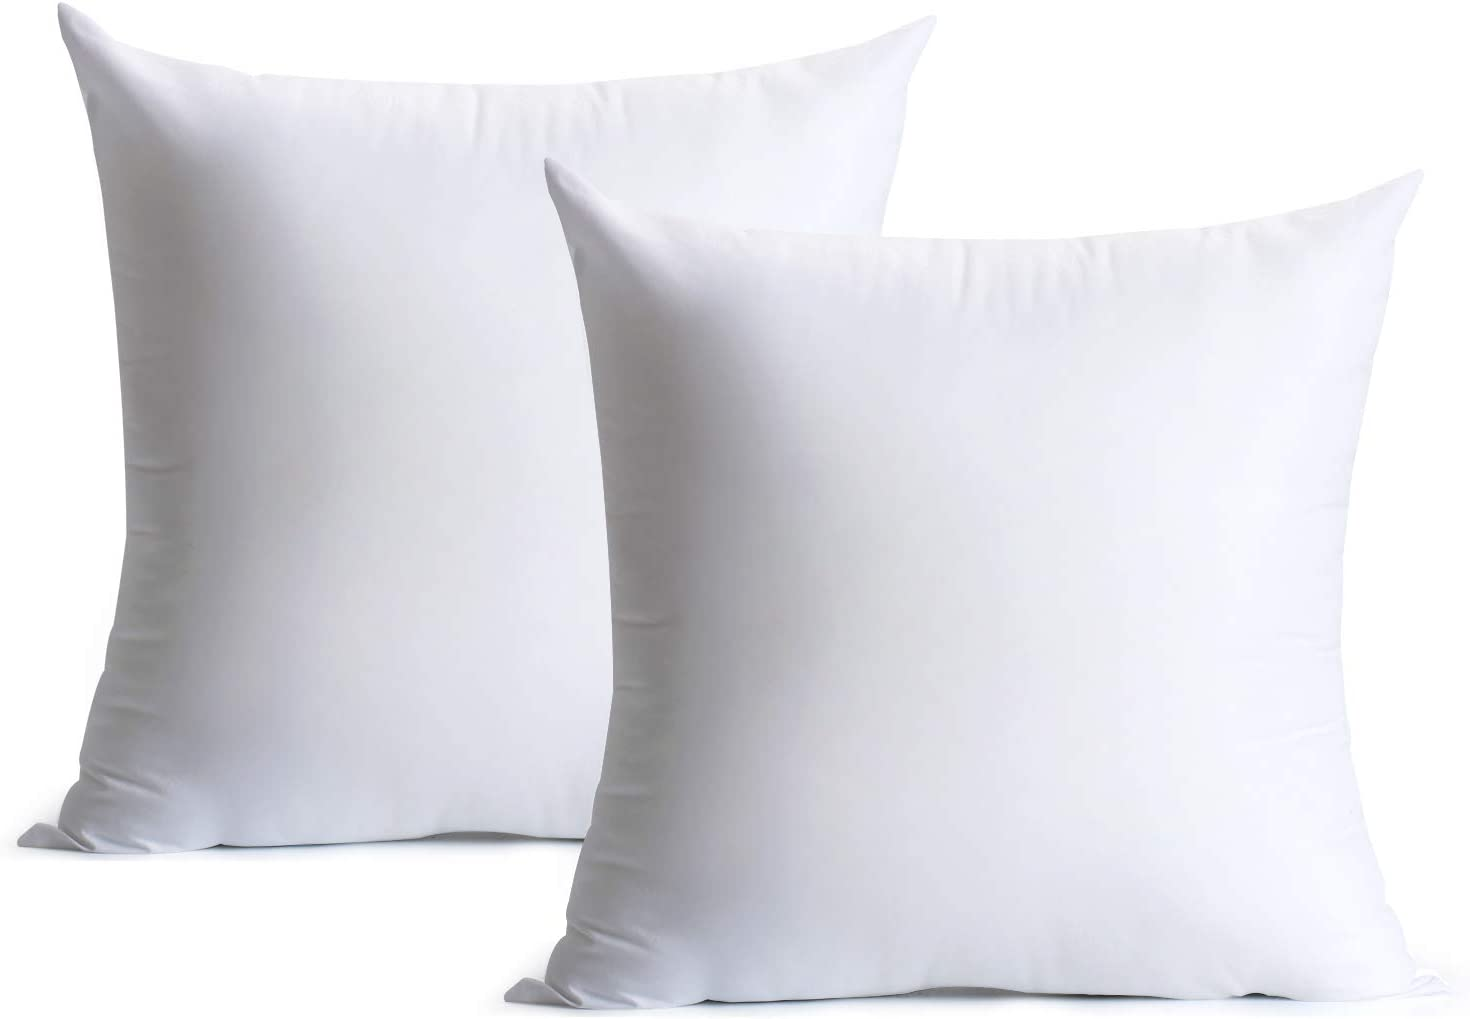 Calibrate Timing 18 x 18 Pillow Inserts, 2 Packs HypoallergenicÃ